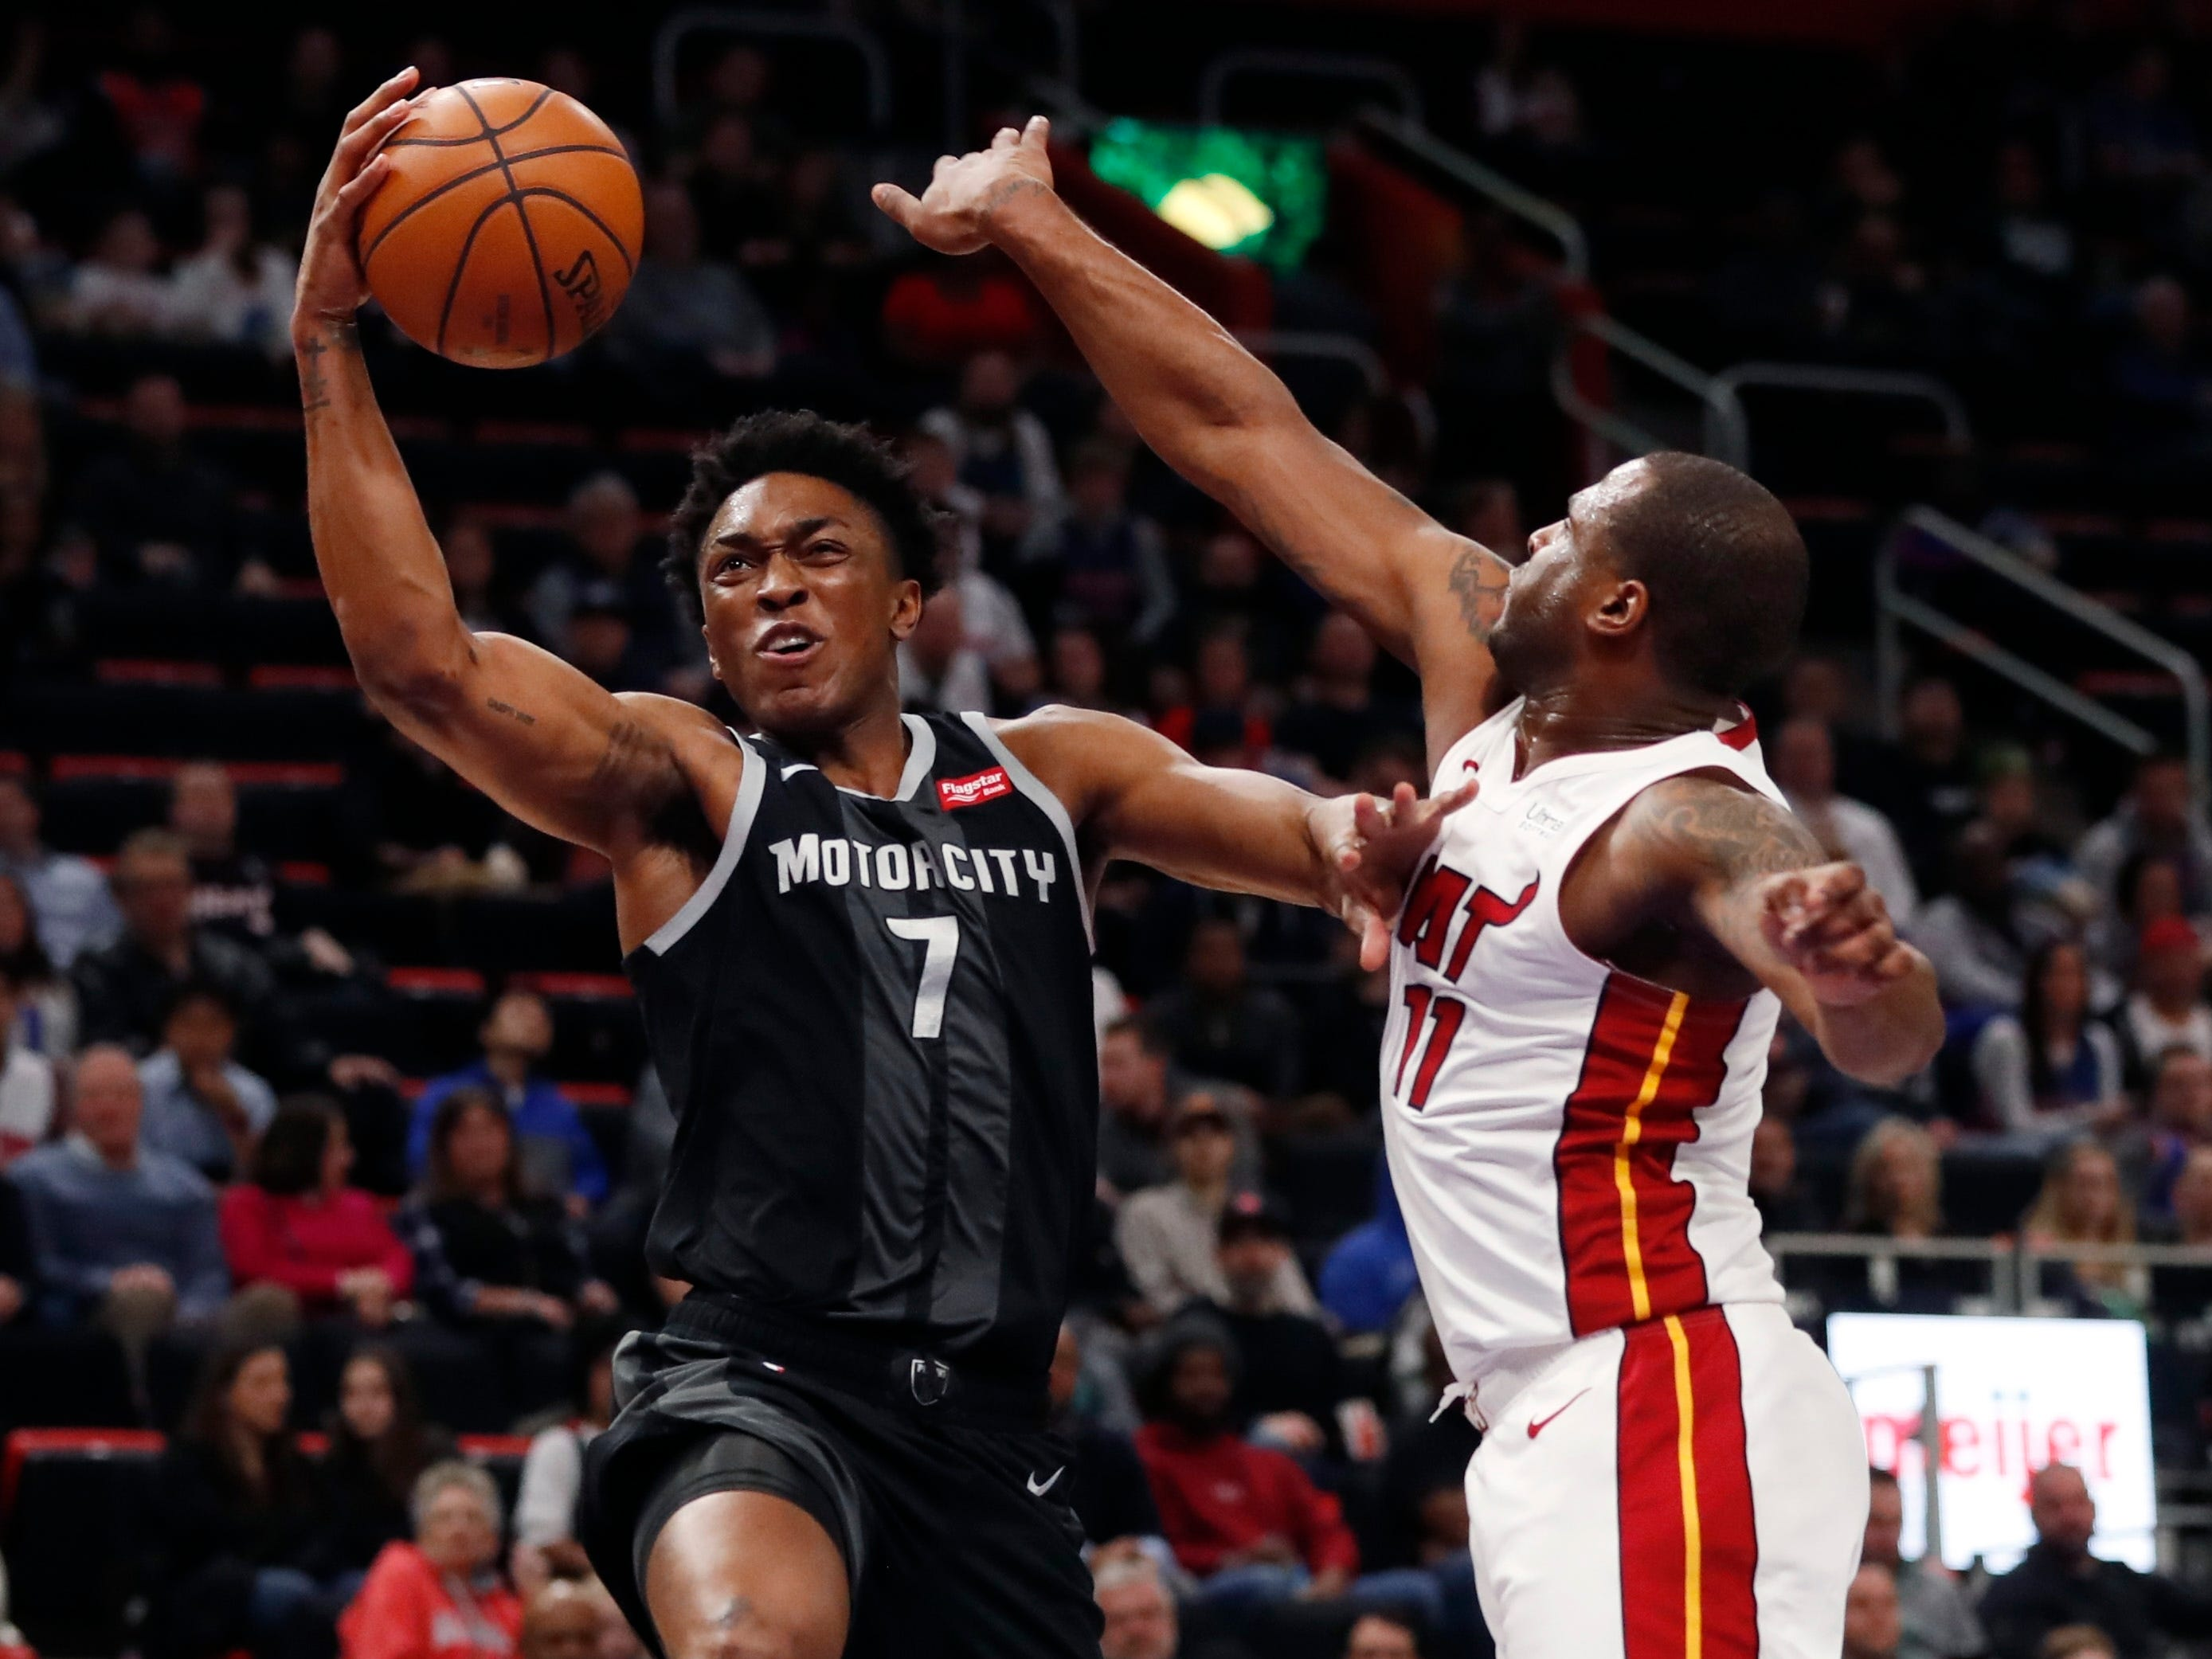 Detroit Pistons forward Stanley Johnson (7) makes a layup as Miami Heat guard Dion Waiters (11) defends during the first half.